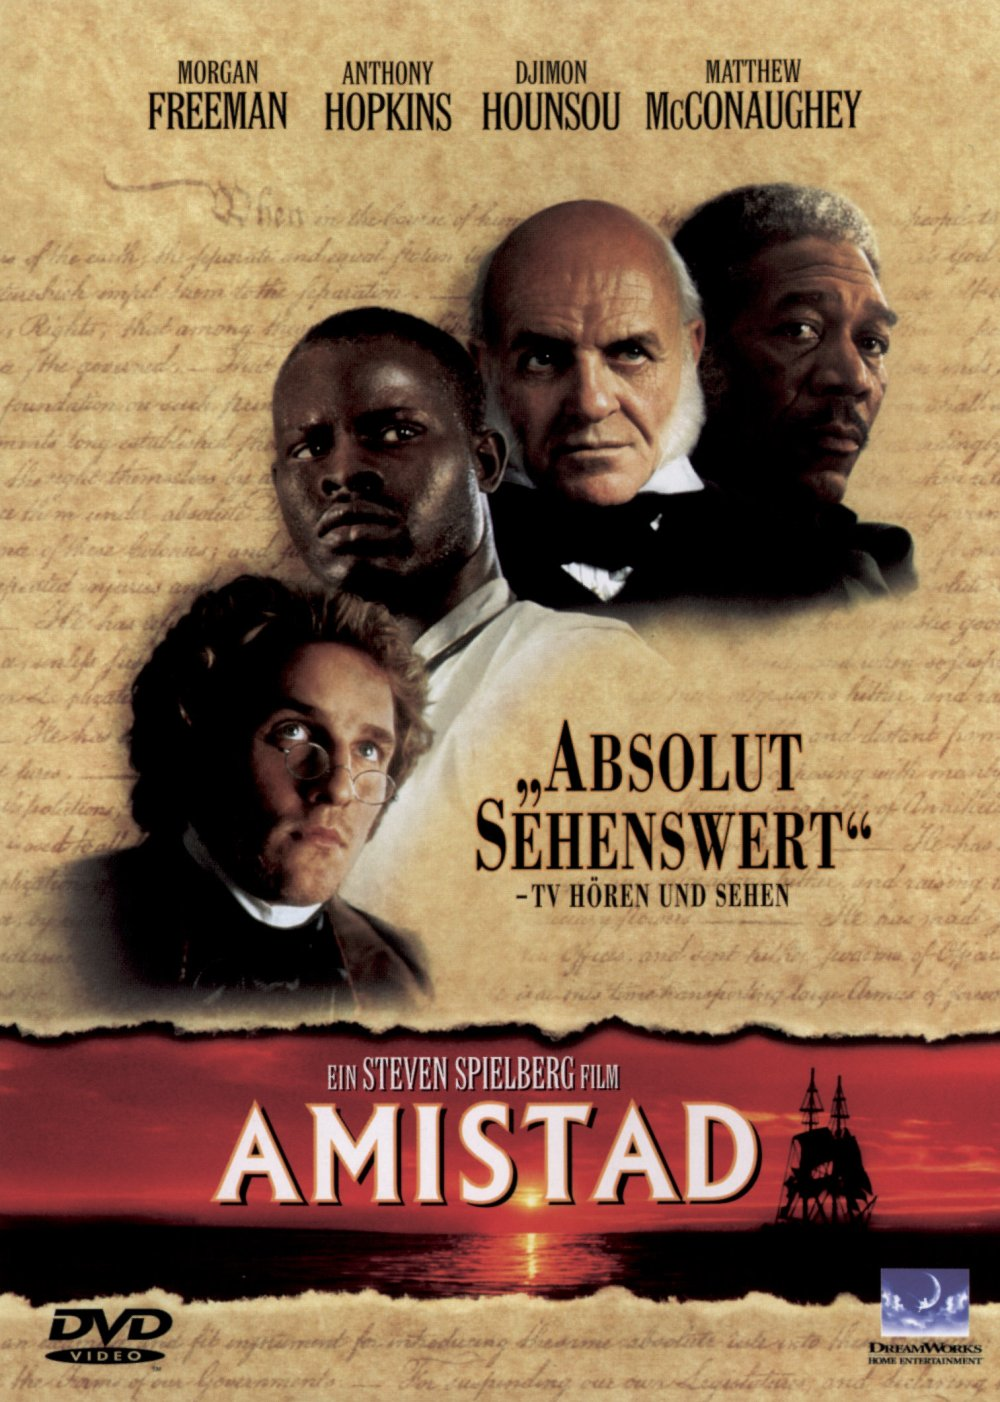 an analysis of the horror of slaves in the film amistad by steven spielberg This steven spielberg-directed exploration into a long-ago episode in african-american history recounts the trial that followed the 1839 rebellion aboard the spanish slave ship amistad and captures the complex political maneuverings set in motion by the event.